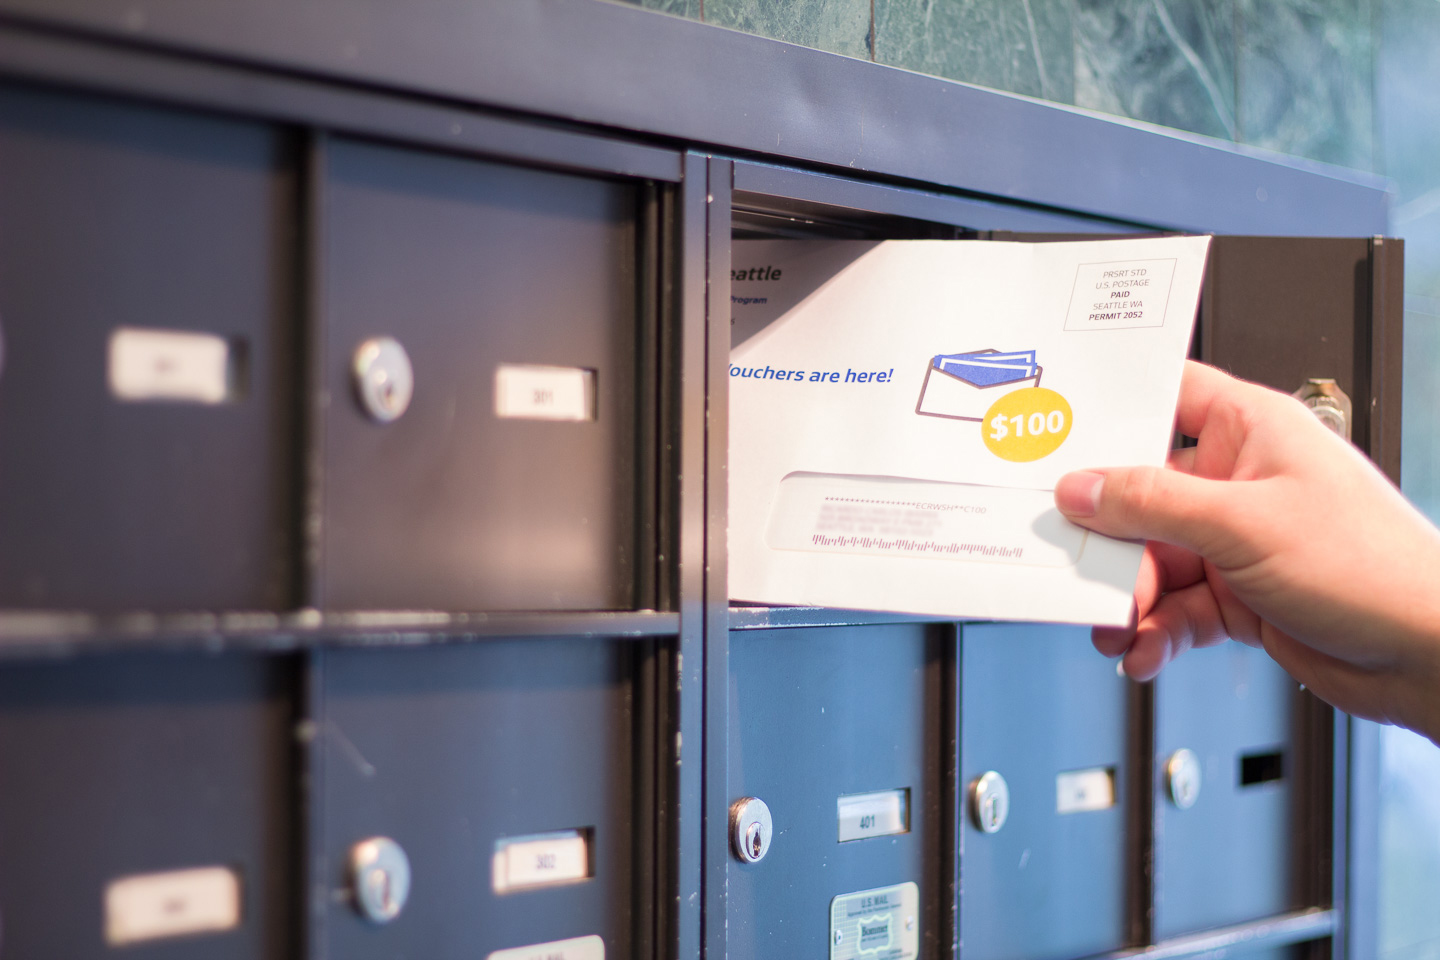 Democracy Vouchers Arrived in 500,000 Seattle mailboxes -